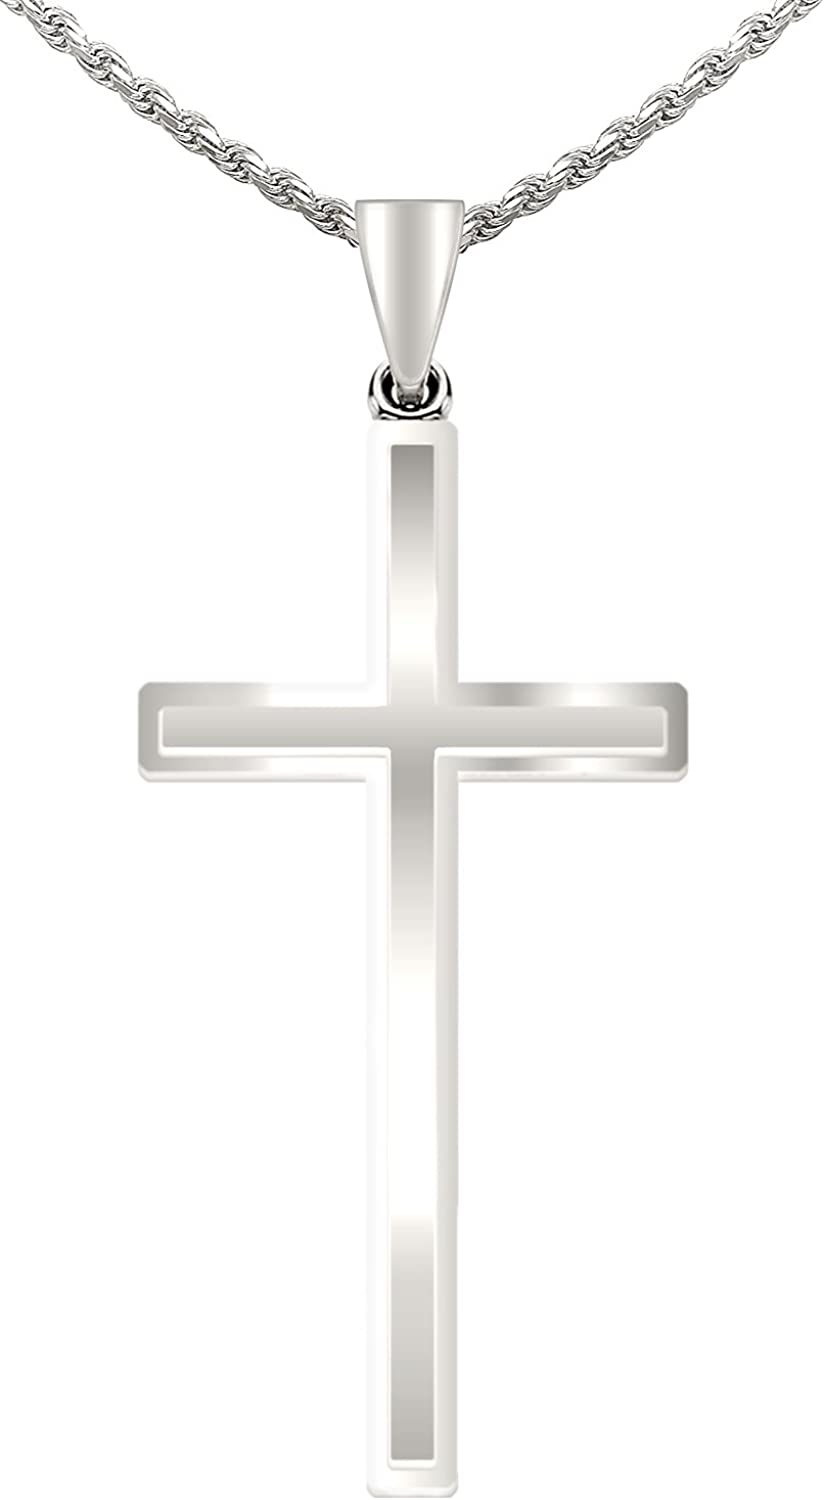 18in to 24in US Jewels And Gems New Large 2 3//8in 0.925 Sterling Silver Crucifix Cross Pendant Necklace